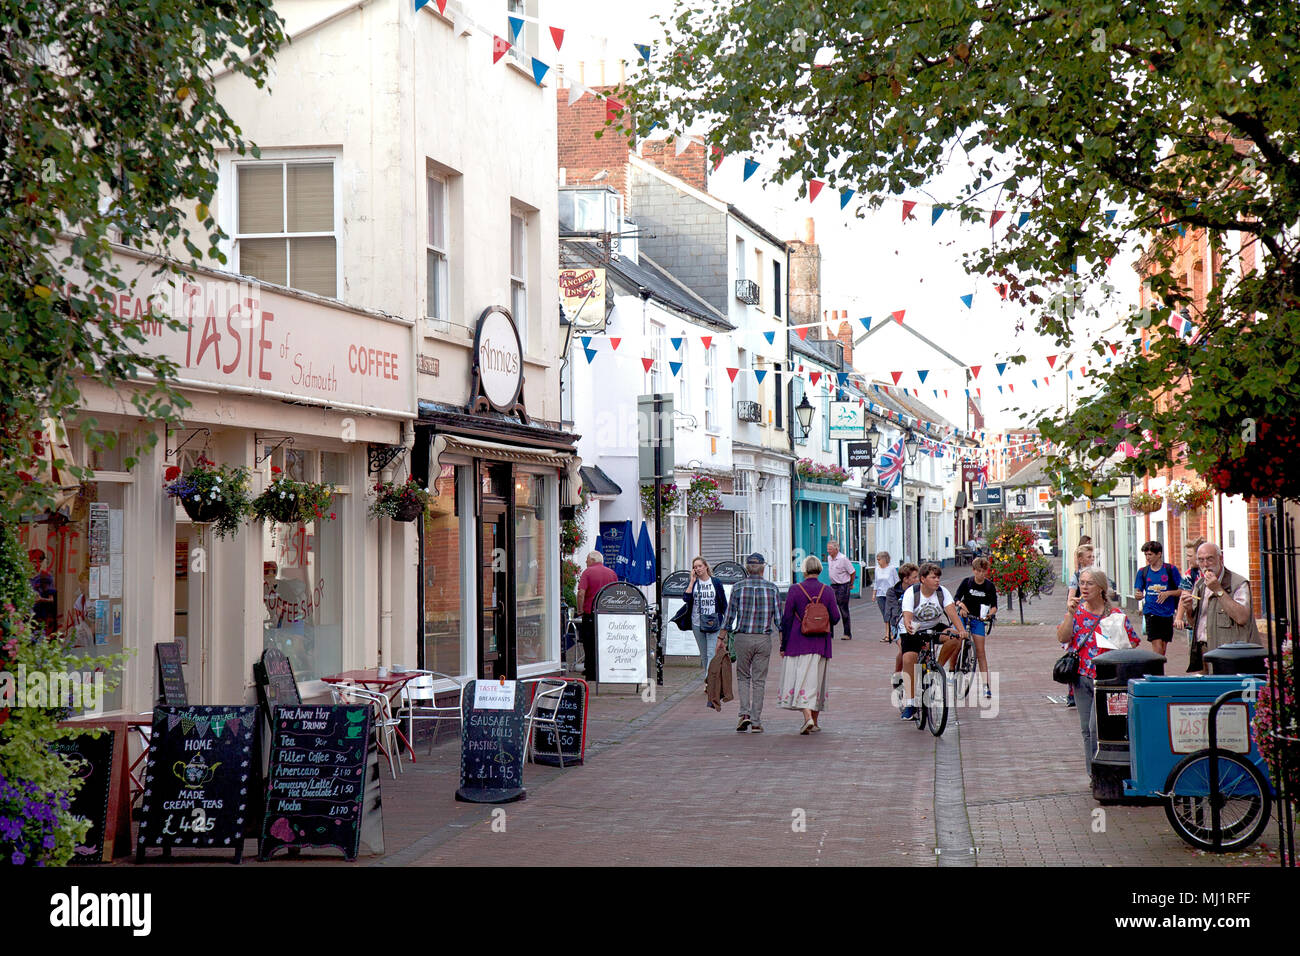 Old Fore Shopping Street (Pedestrian zone), Sidmouth, East Devon, England - Stock Image